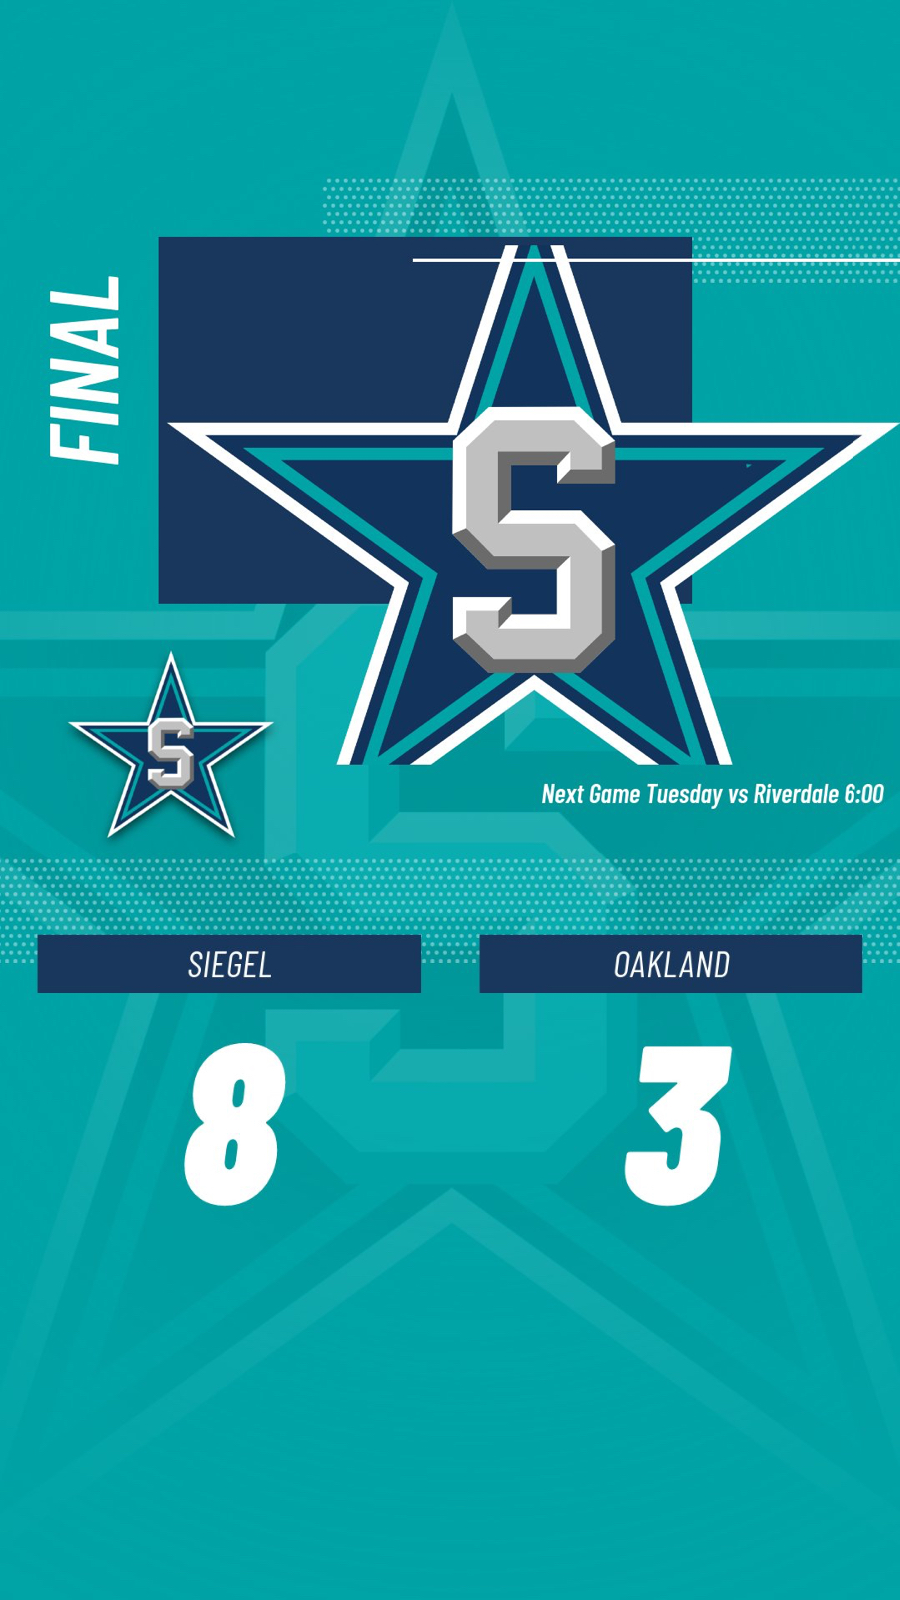 Siegel Lady Stars Take Victory Over Oakland